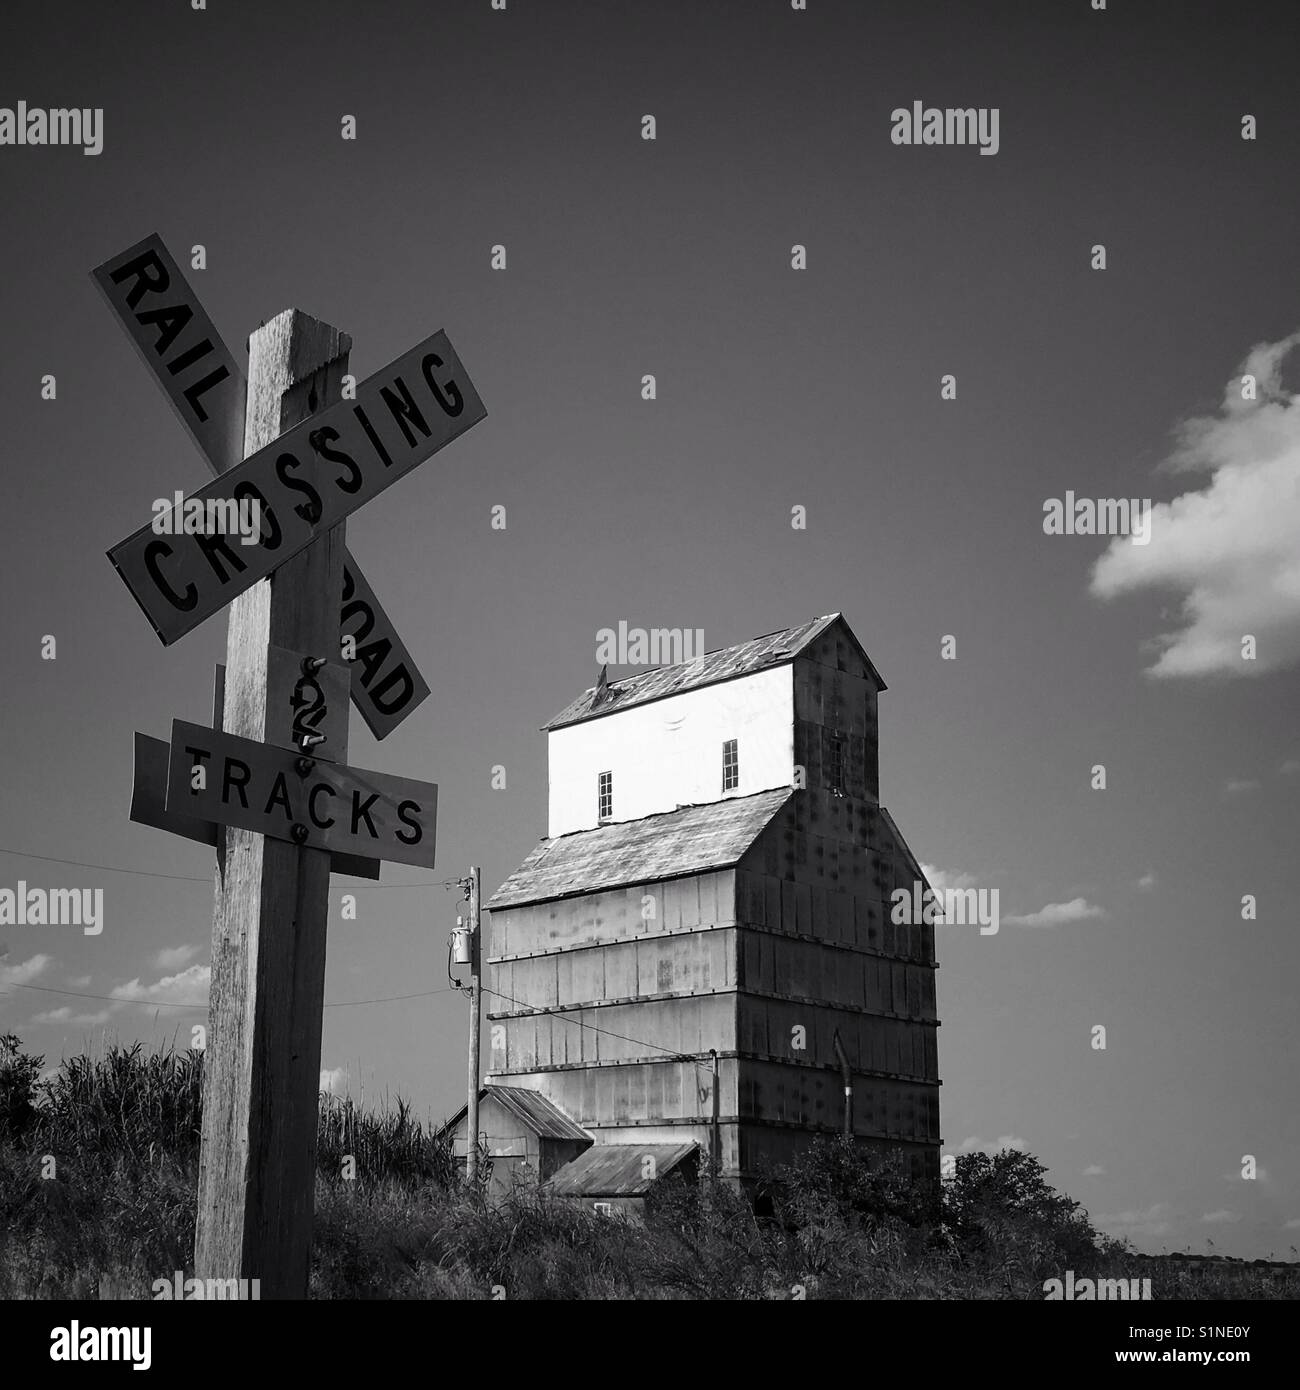 Haunted Places In Silverton Oregon: Rural Railroad Crossing Stock Photos & Rural Railroad